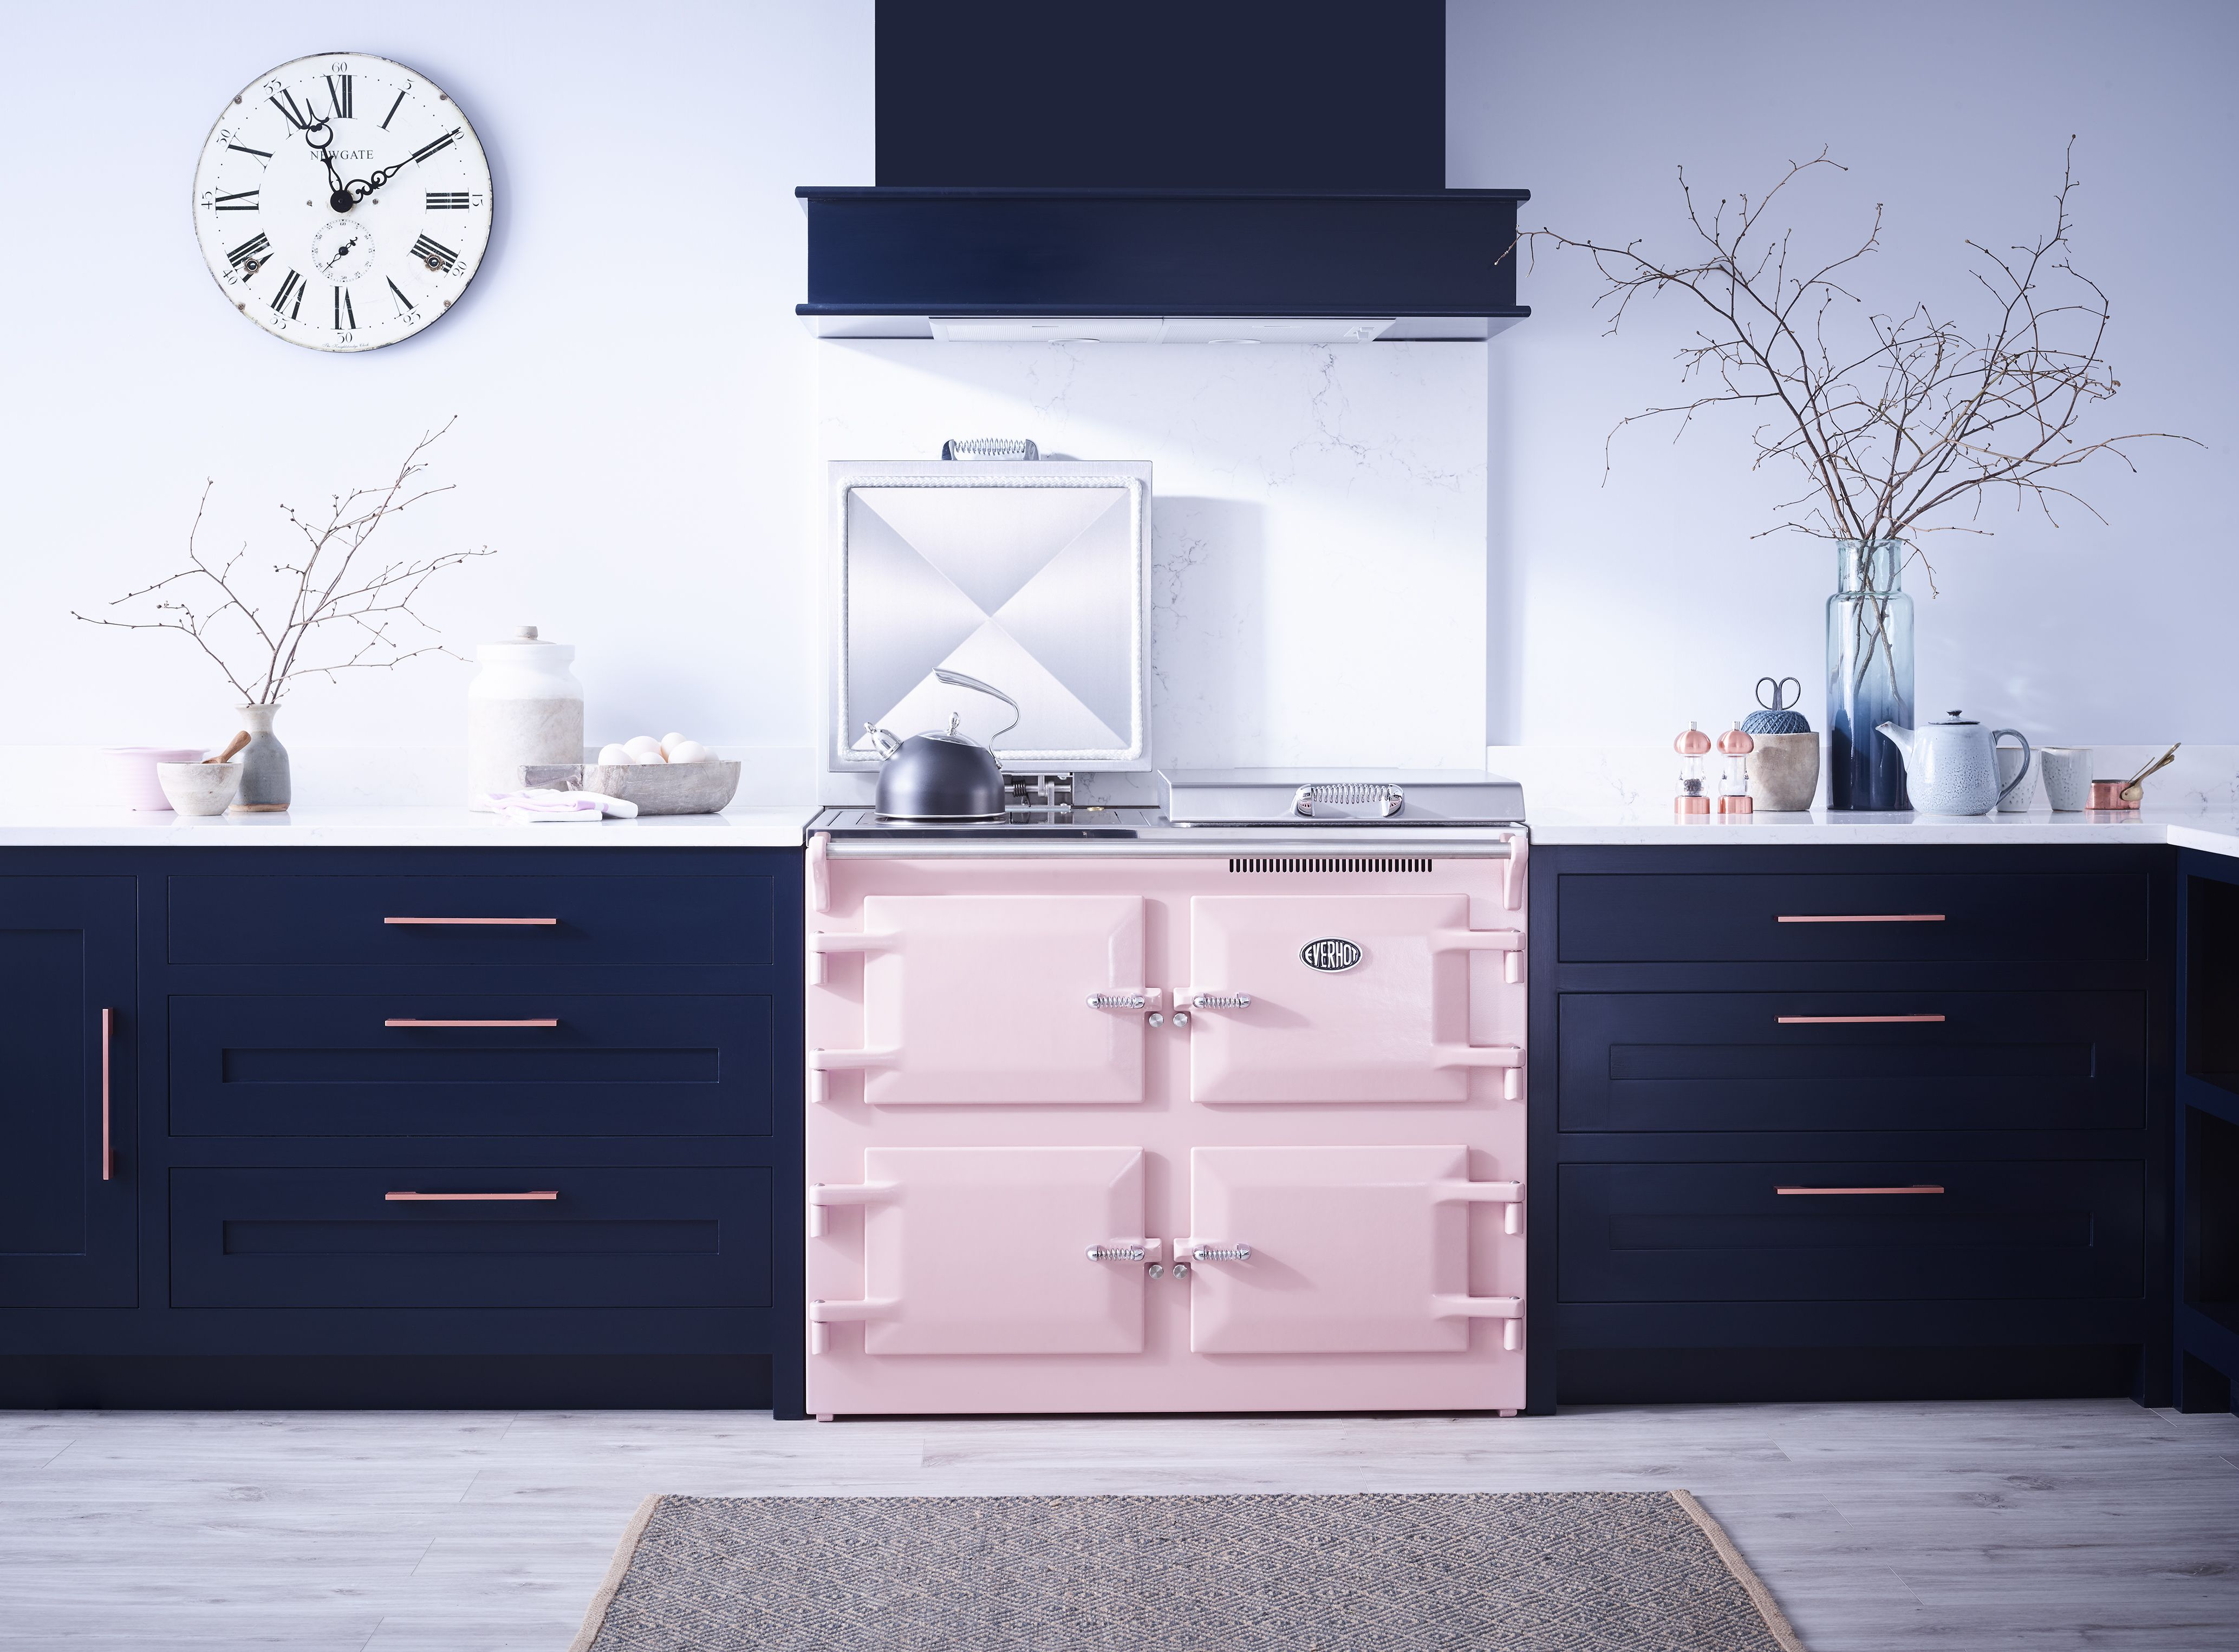 Dusty pink / Blush pink range cooker styled with navy blue